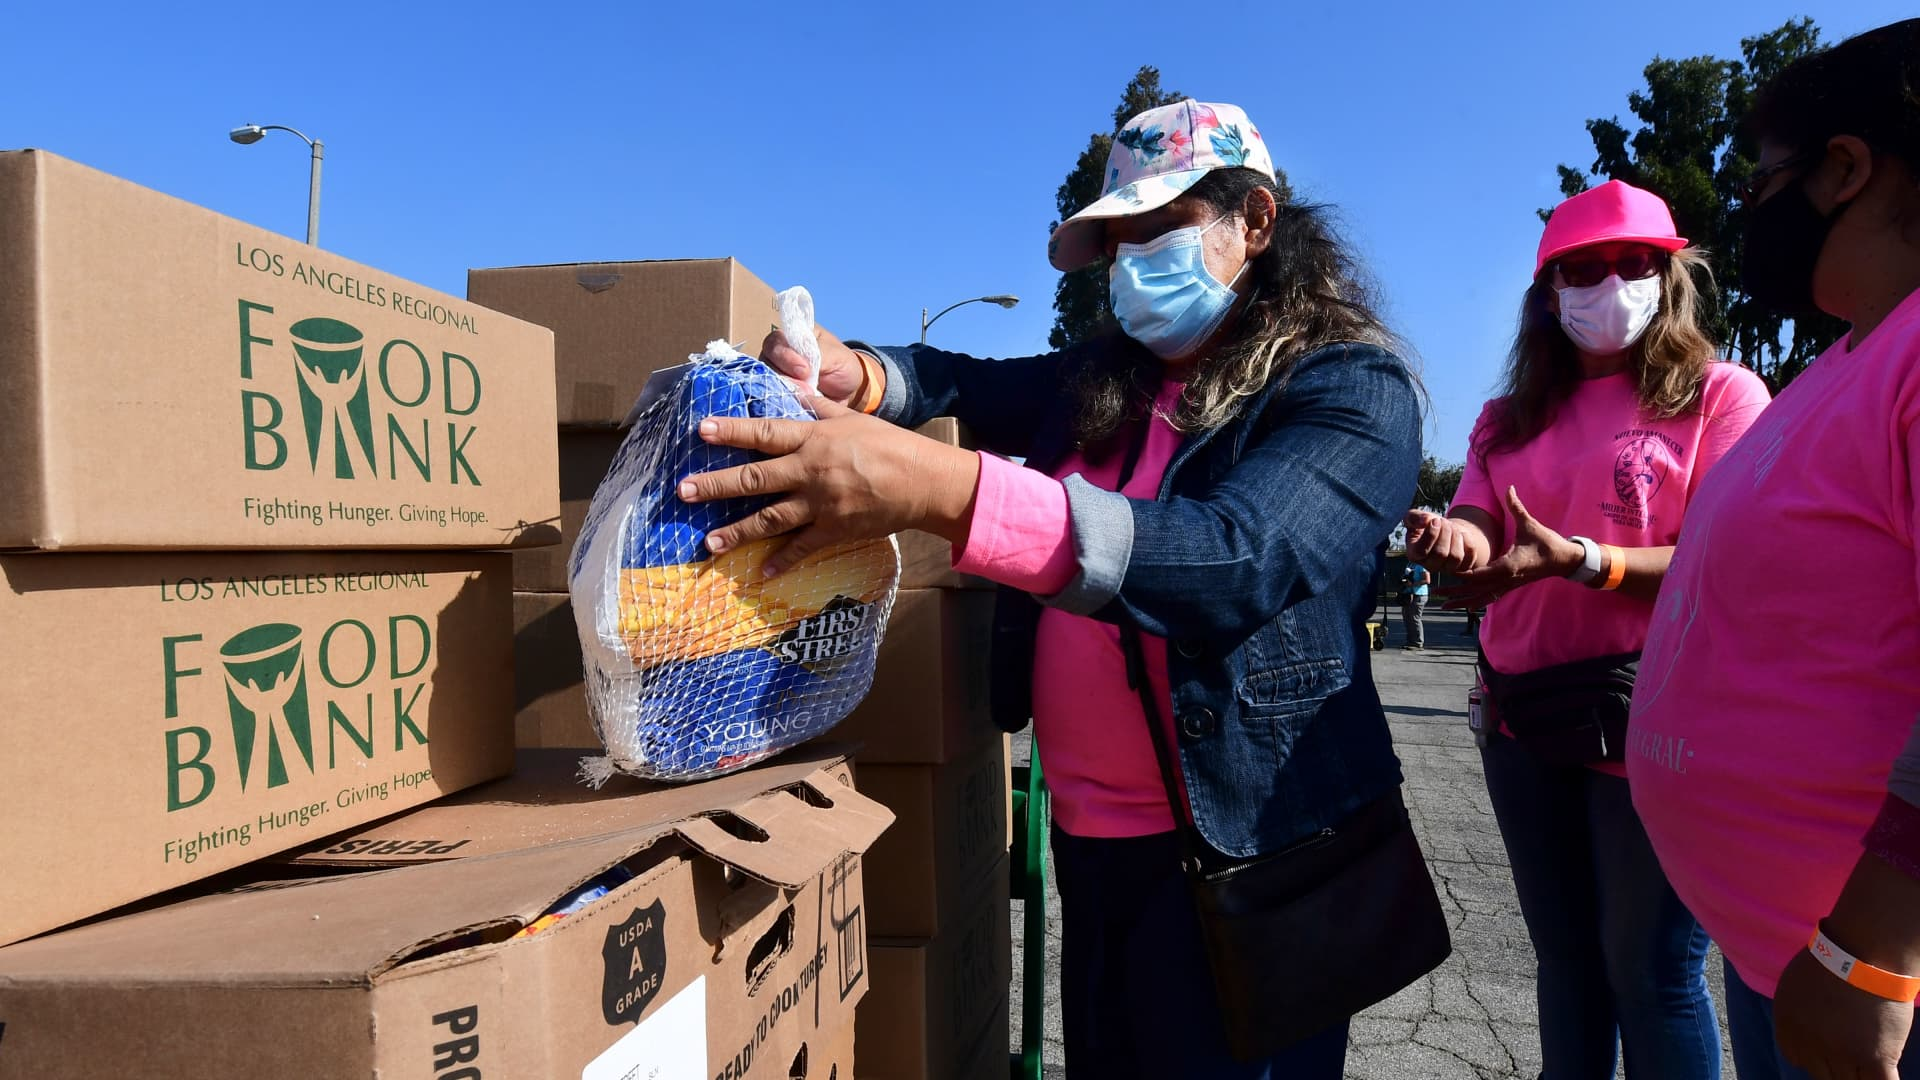 Volunteers from women's organization Nuevo Amanecer Mujer Integral help with the distribution of frozen turkeys and food boxes ahead of Thanksgiving to families affected by the Covid-19 pandemic on November 18, 2020 in Los Angeles, California.